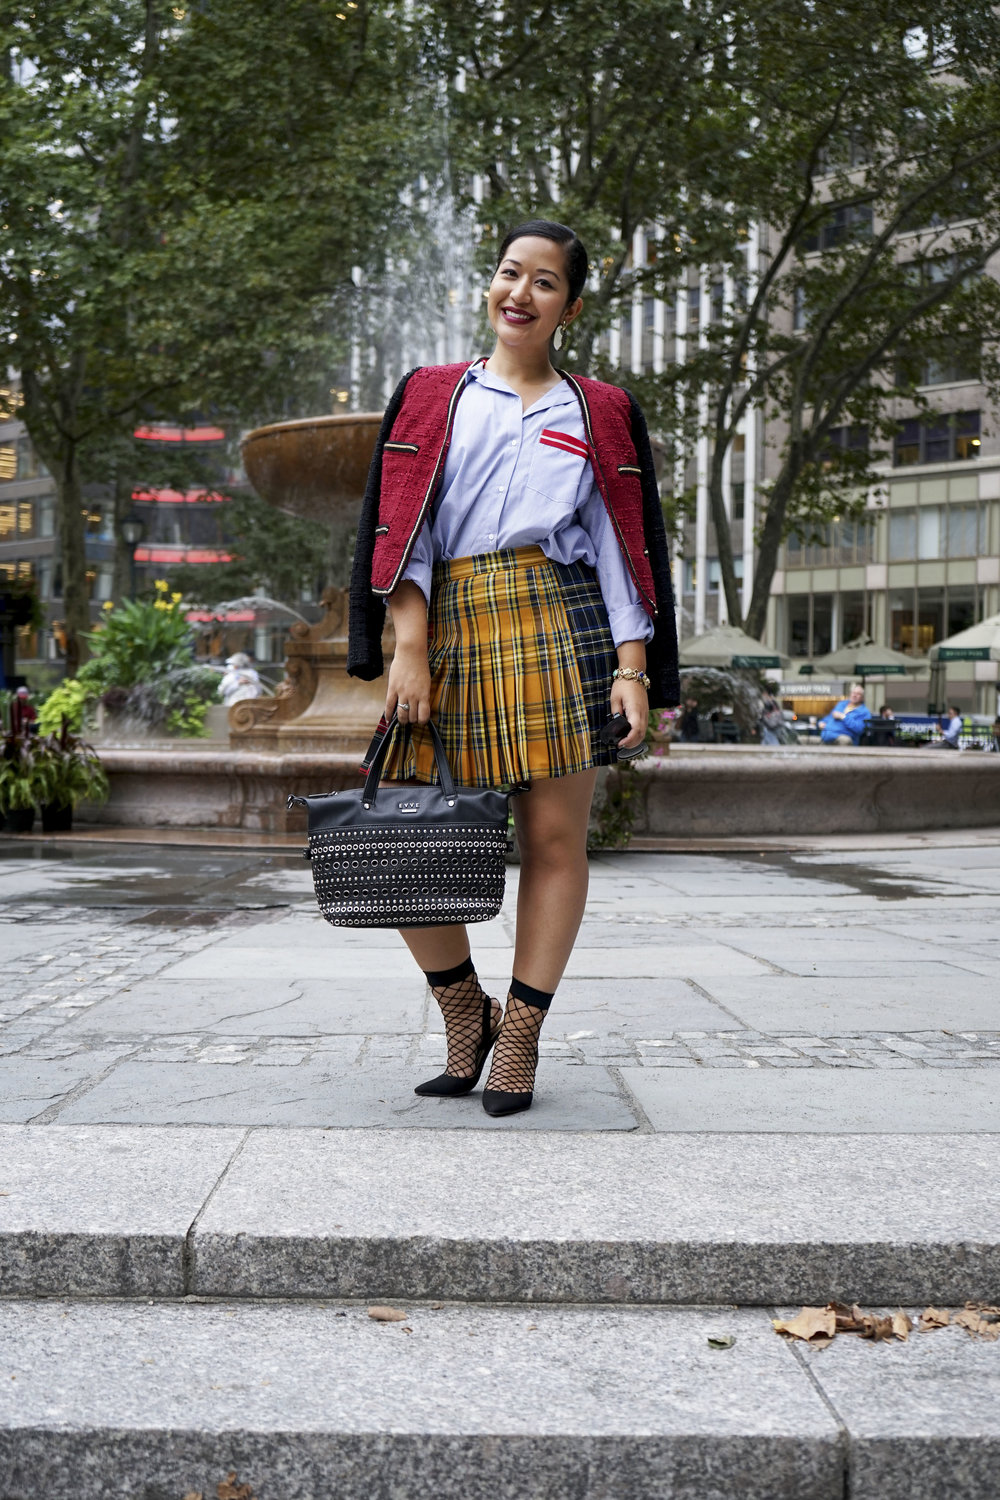 Krity S x Fall Trends x Preppy Plaid 4.jpg